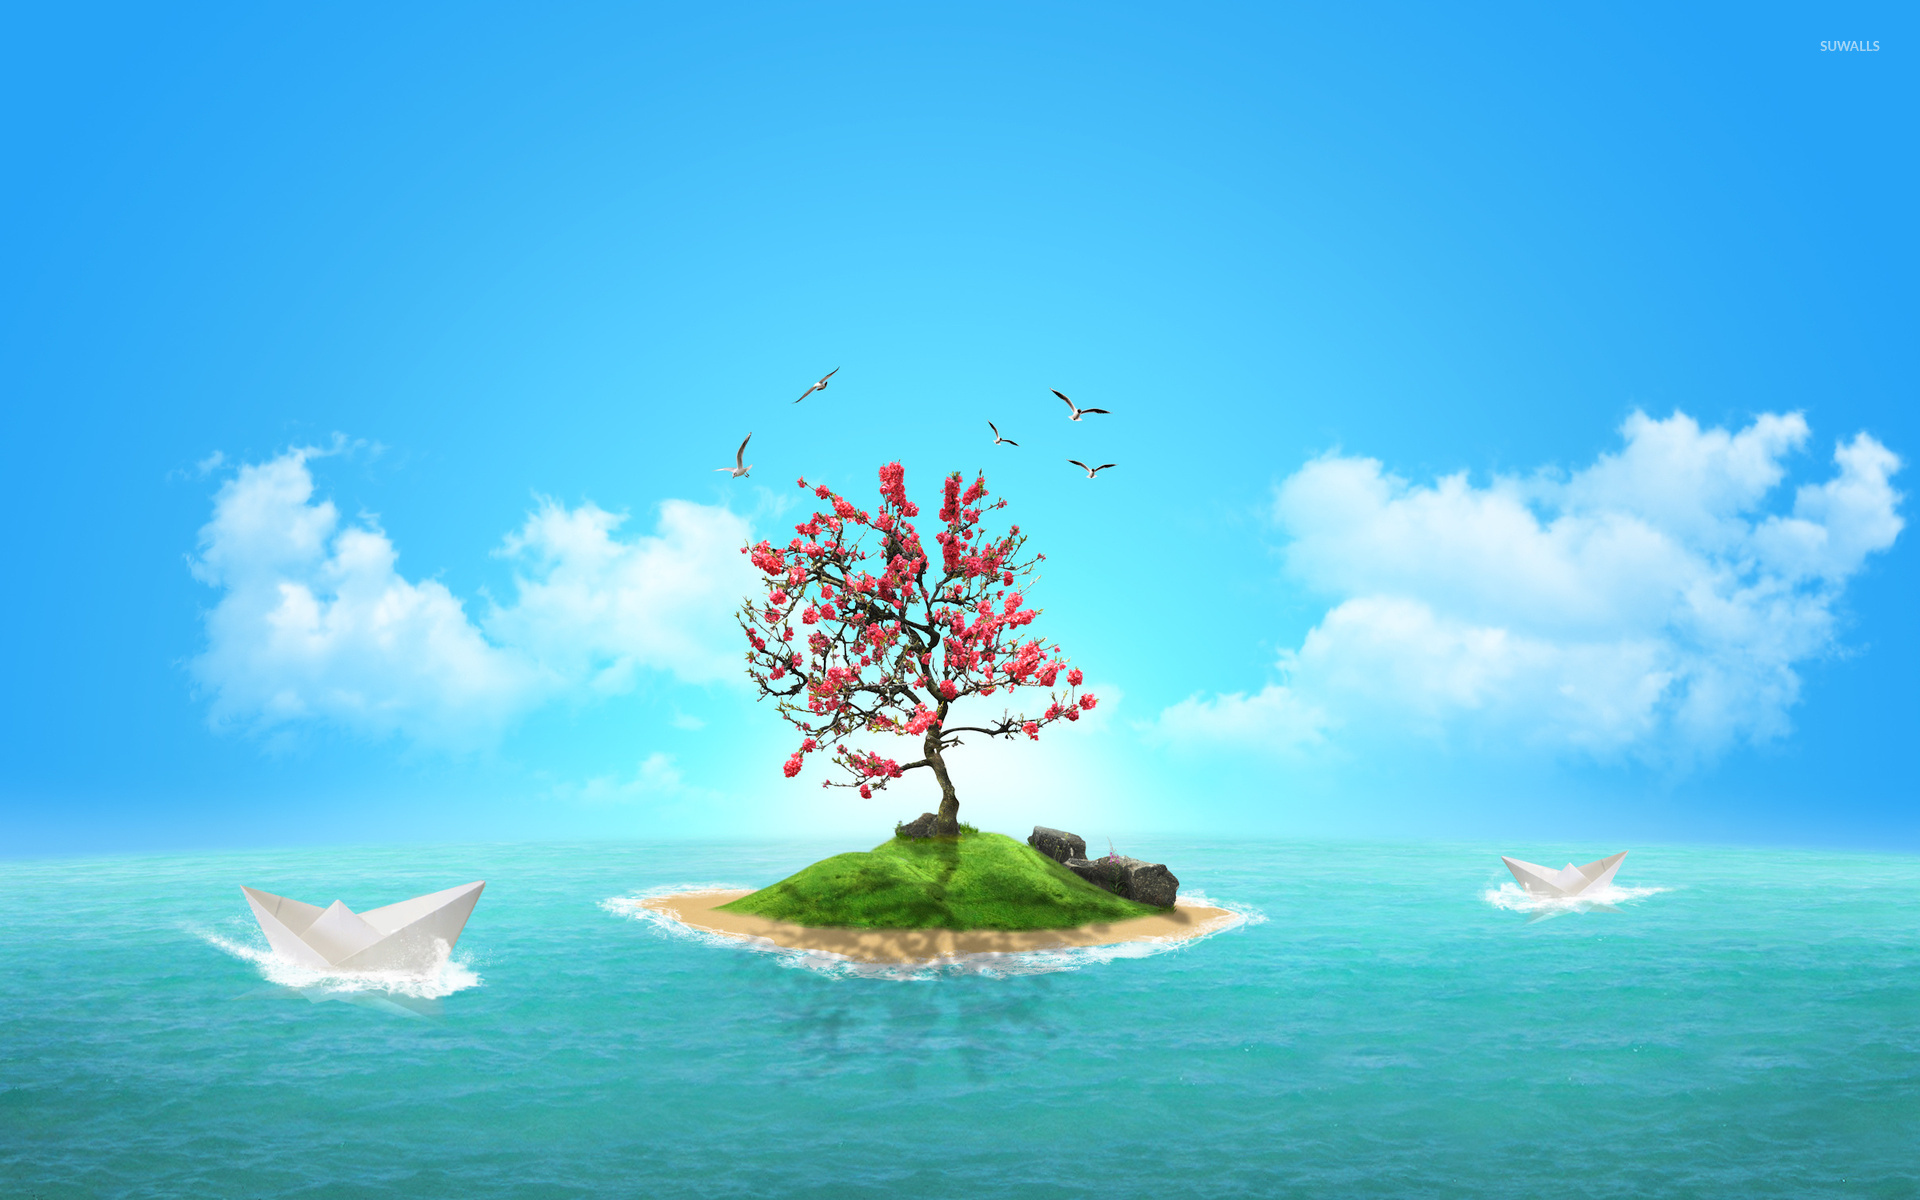 1080p art small island - photo #15